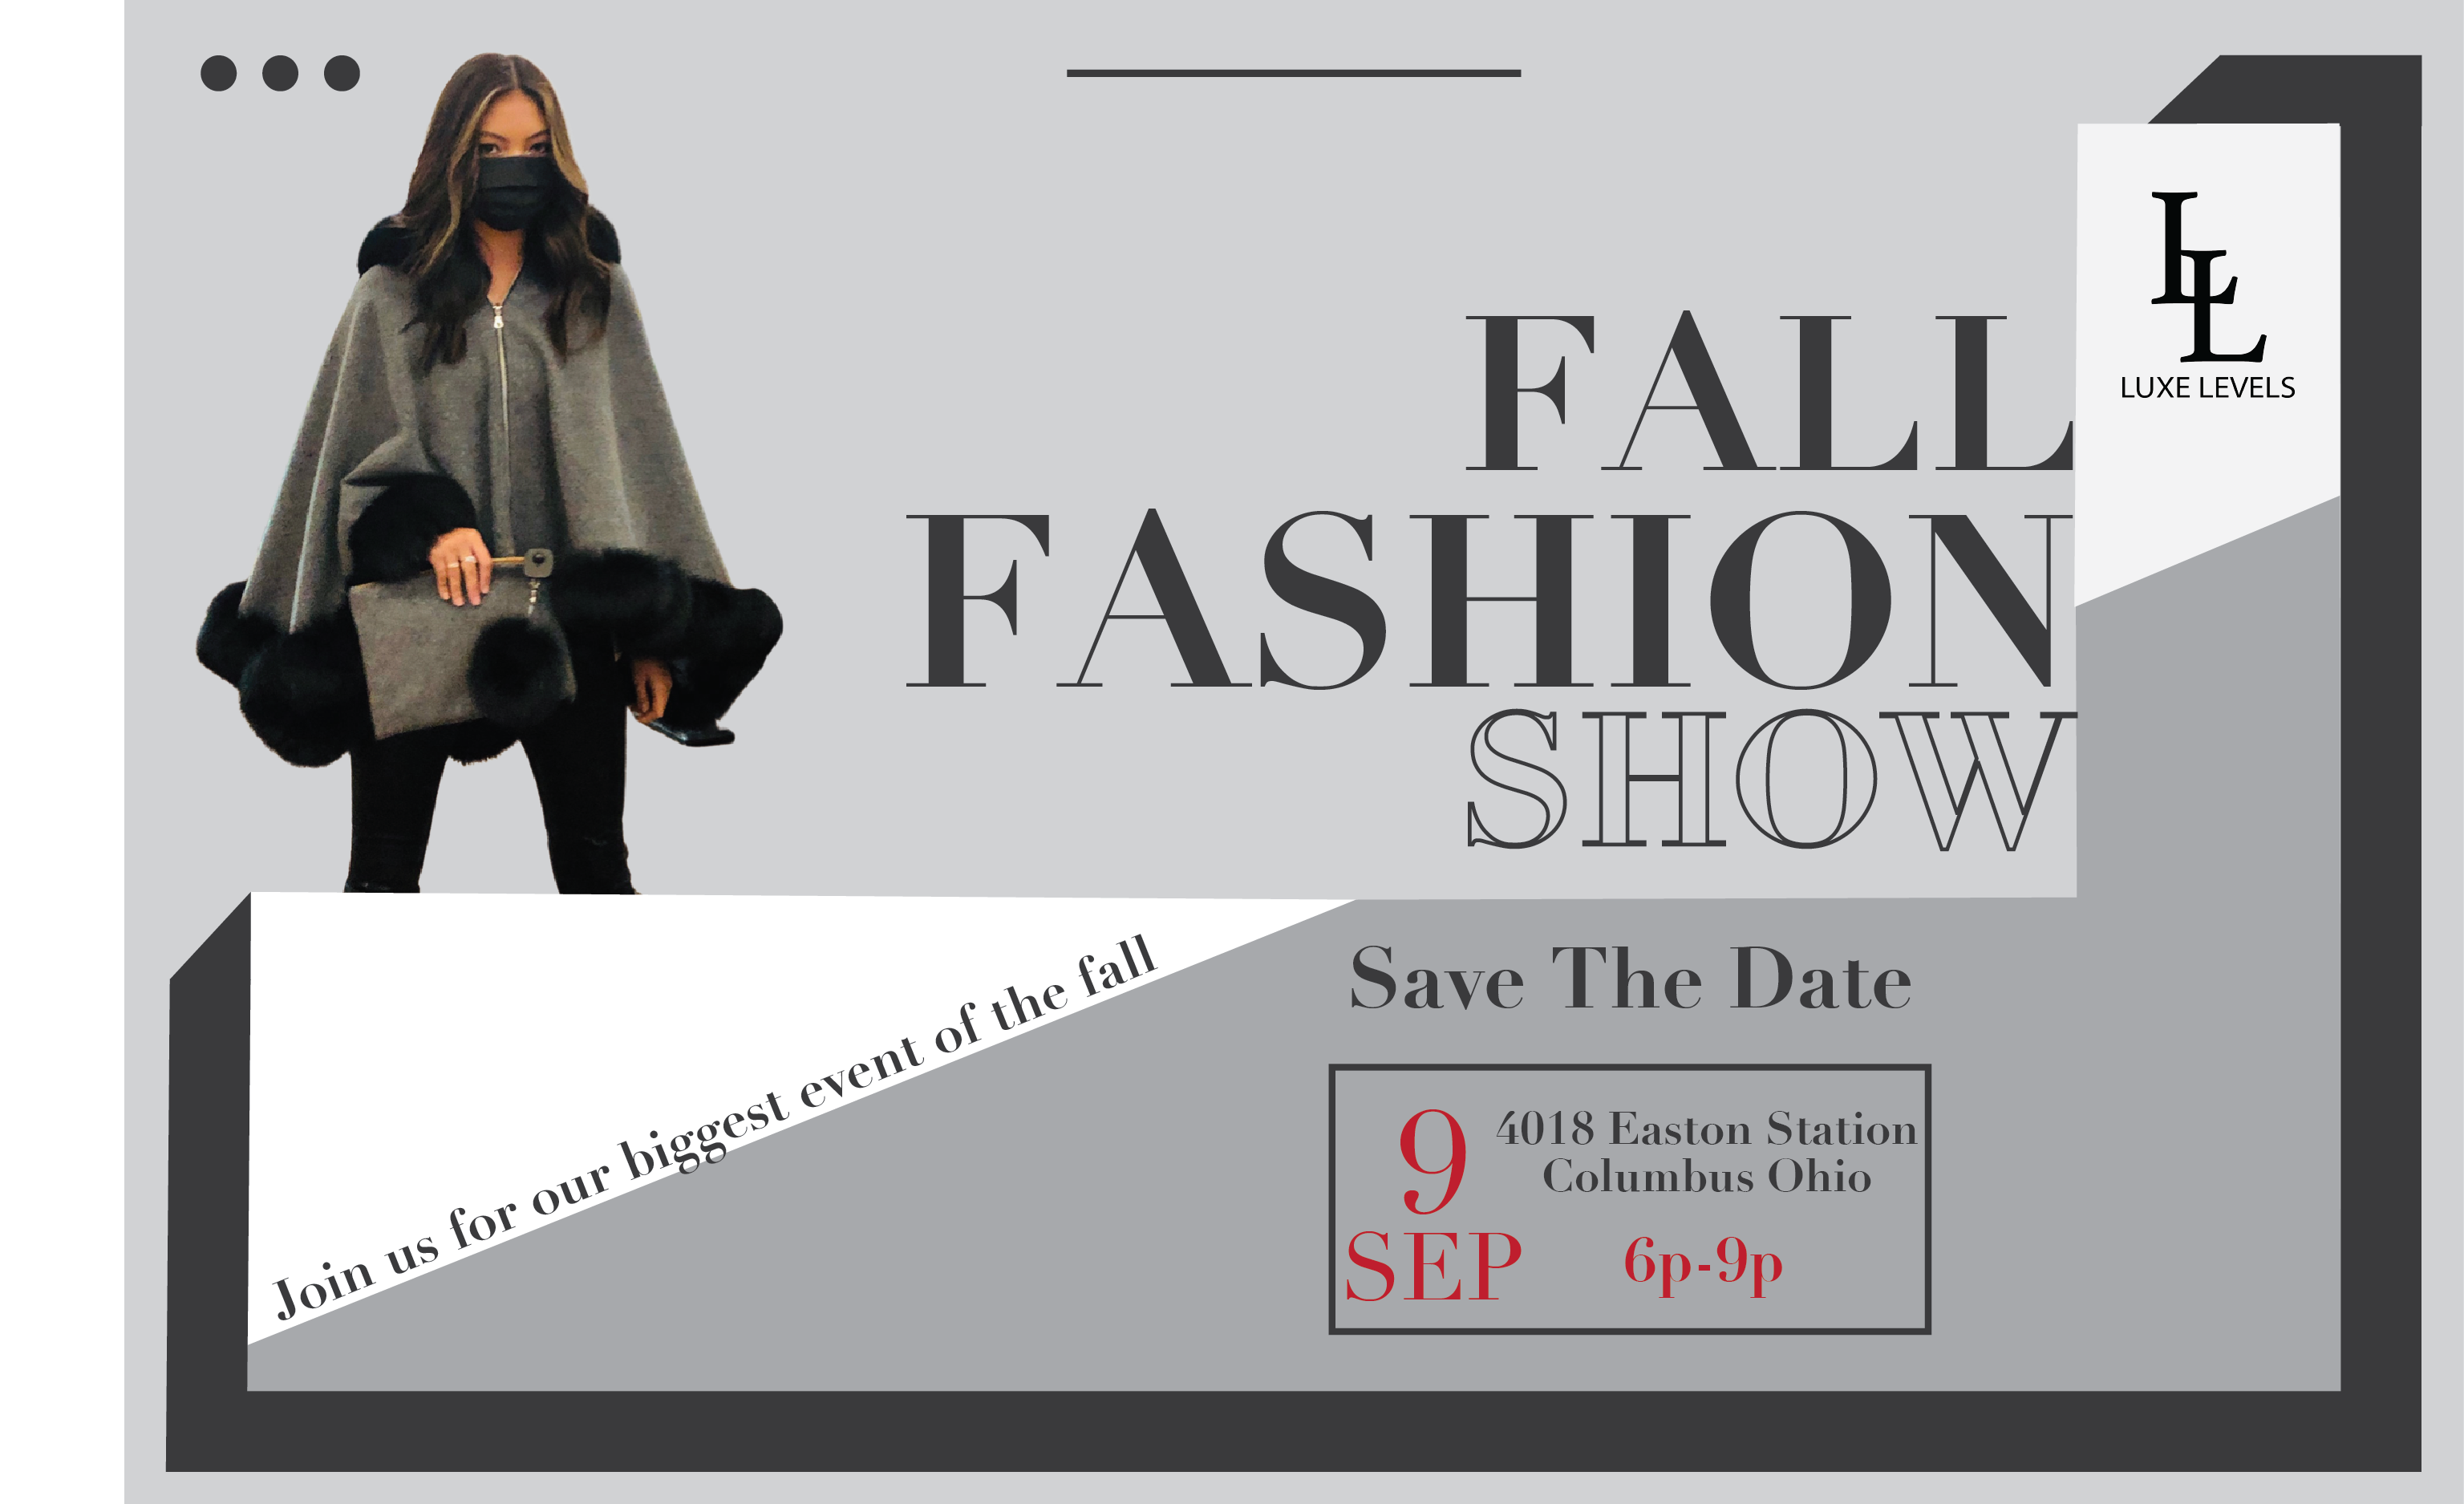 Luxe Levels Fall Fashion Show. Save the Date. September 9, 2021 from 6-9pm. 4018 Easton Station in COlumbus, Ohio. Join us for our biggest event of the fall.